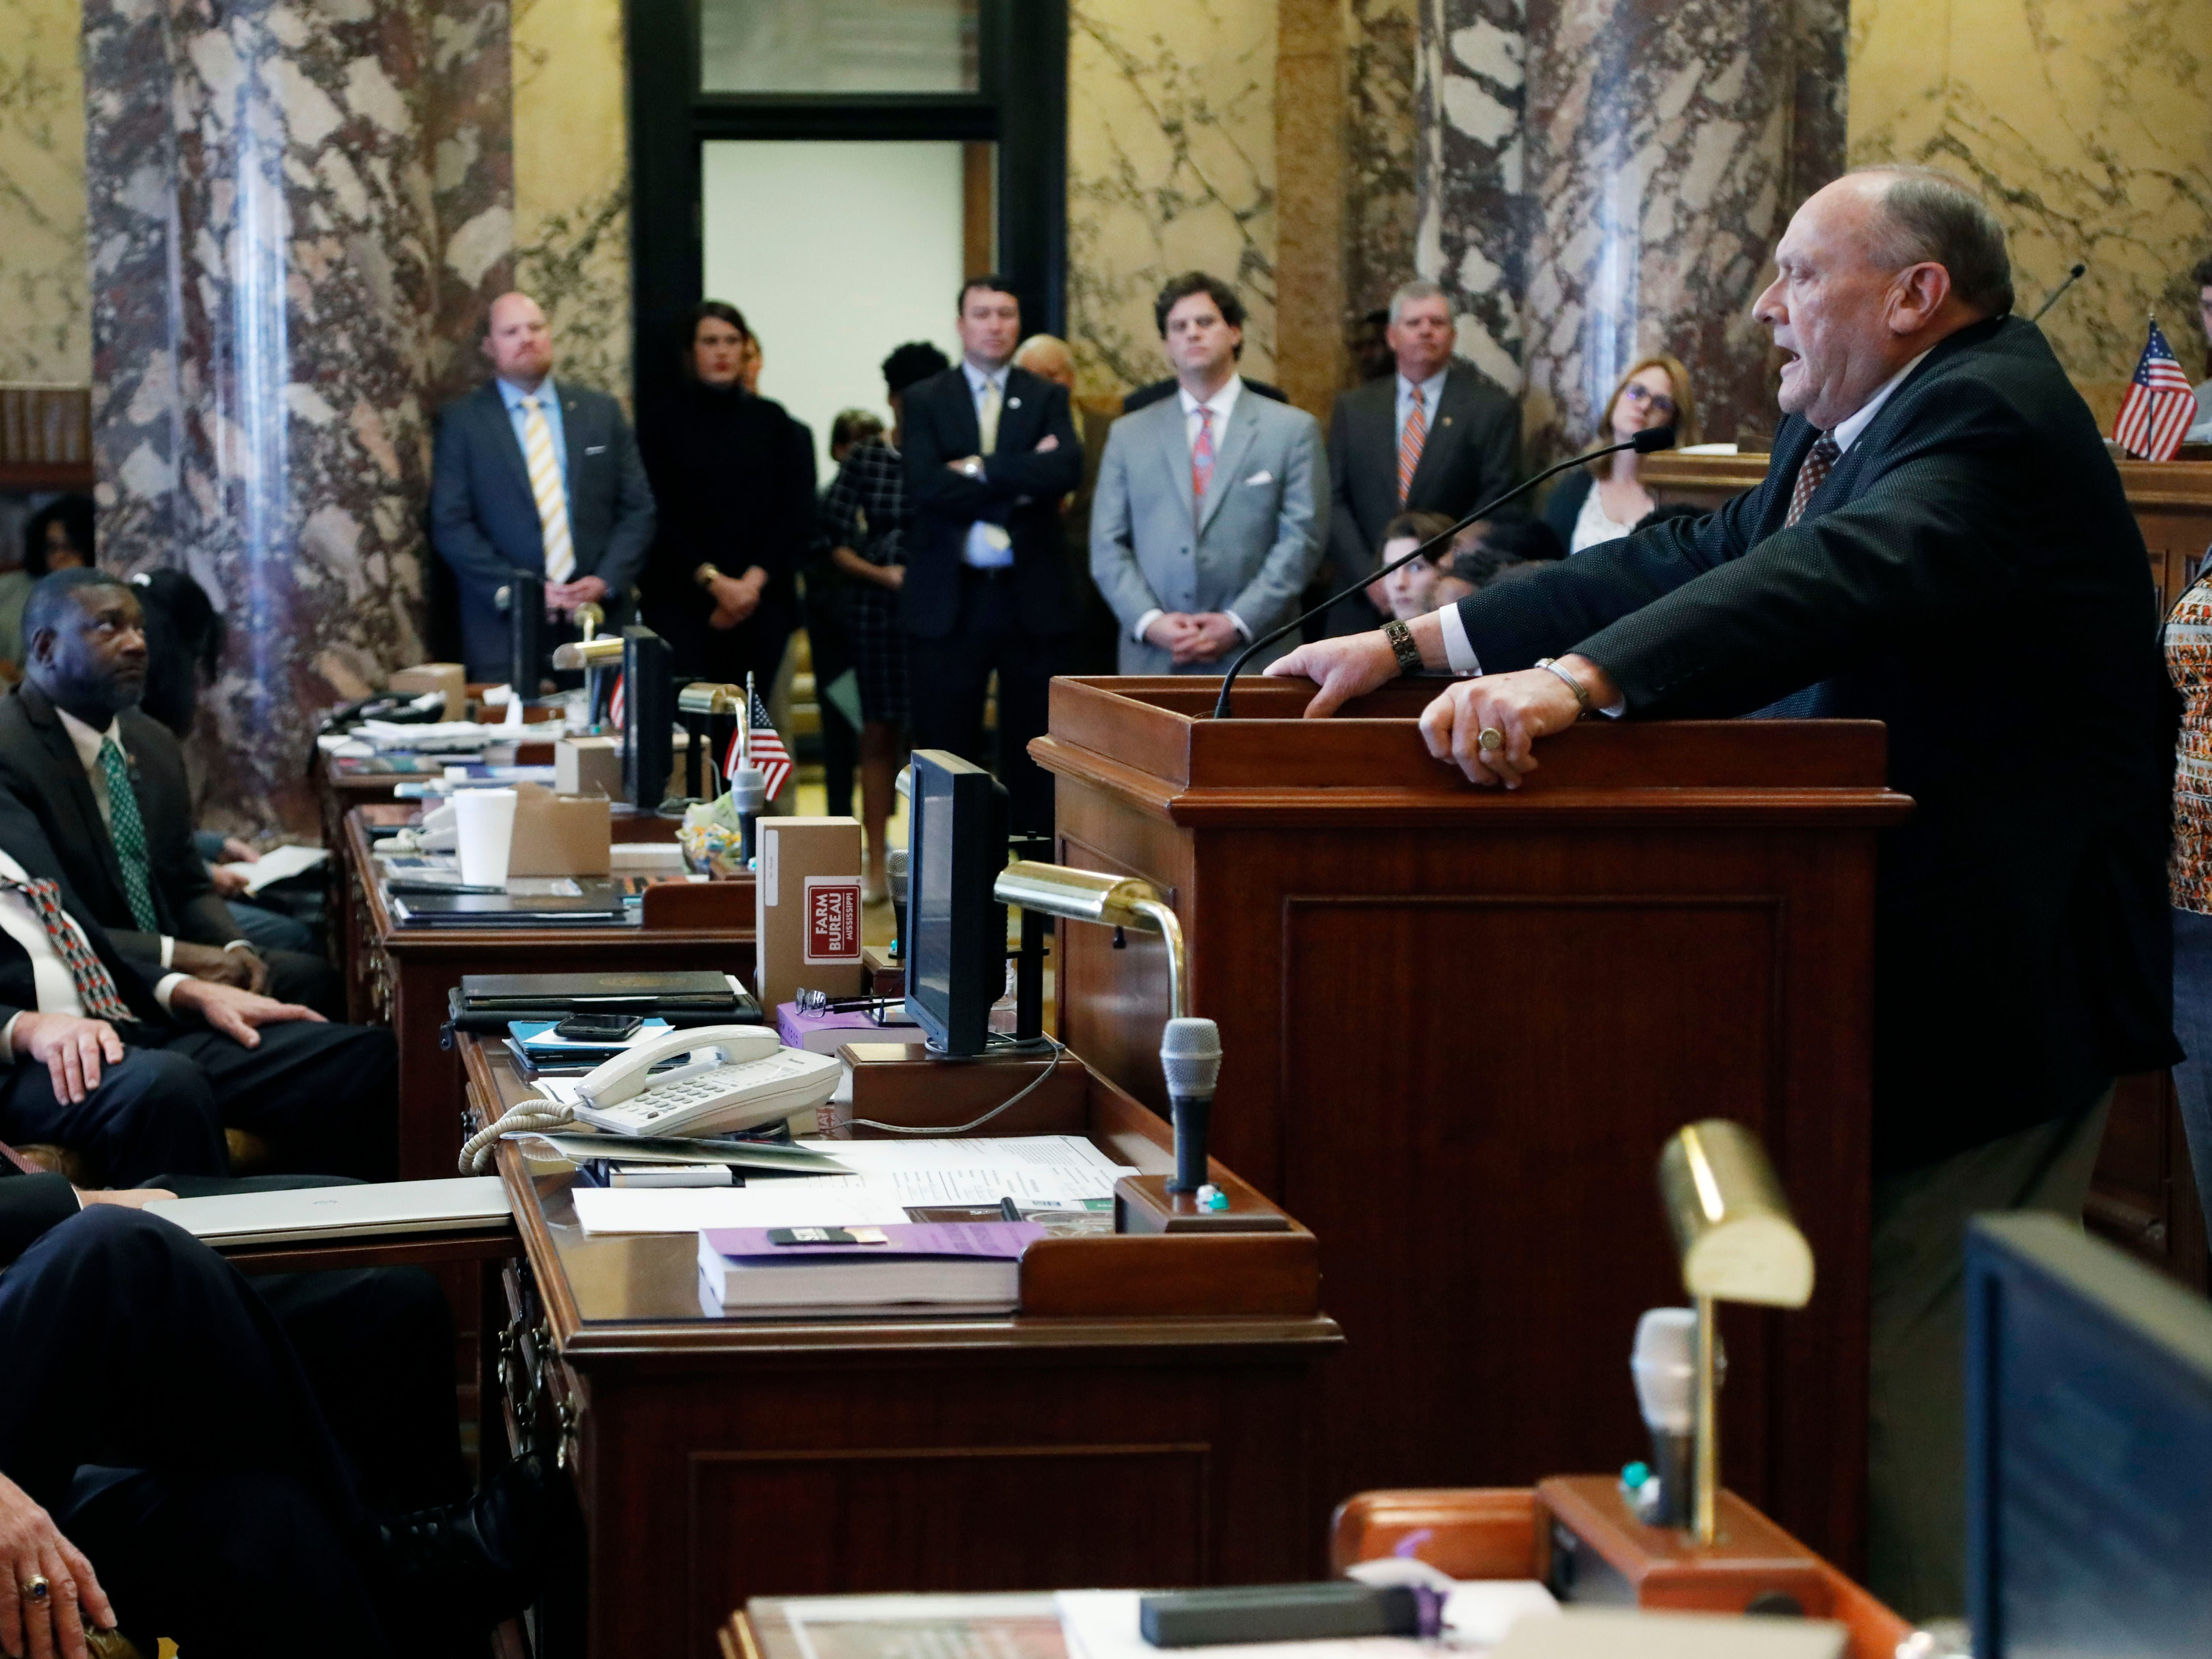 Republican Terry Burton of Newton, president pro tempore of the Mississippi Senate, tells the body he is resigning his leadership role, weeks after being charged with second-offense drunken driving, moments after the beginning of the 2019 legislative session at the Capitol in Jackson, Miss., Tuesday, Jan. 8, 2019. Burton says he will remain in the 52-member Senate this year but will not seek another four-year term in office.